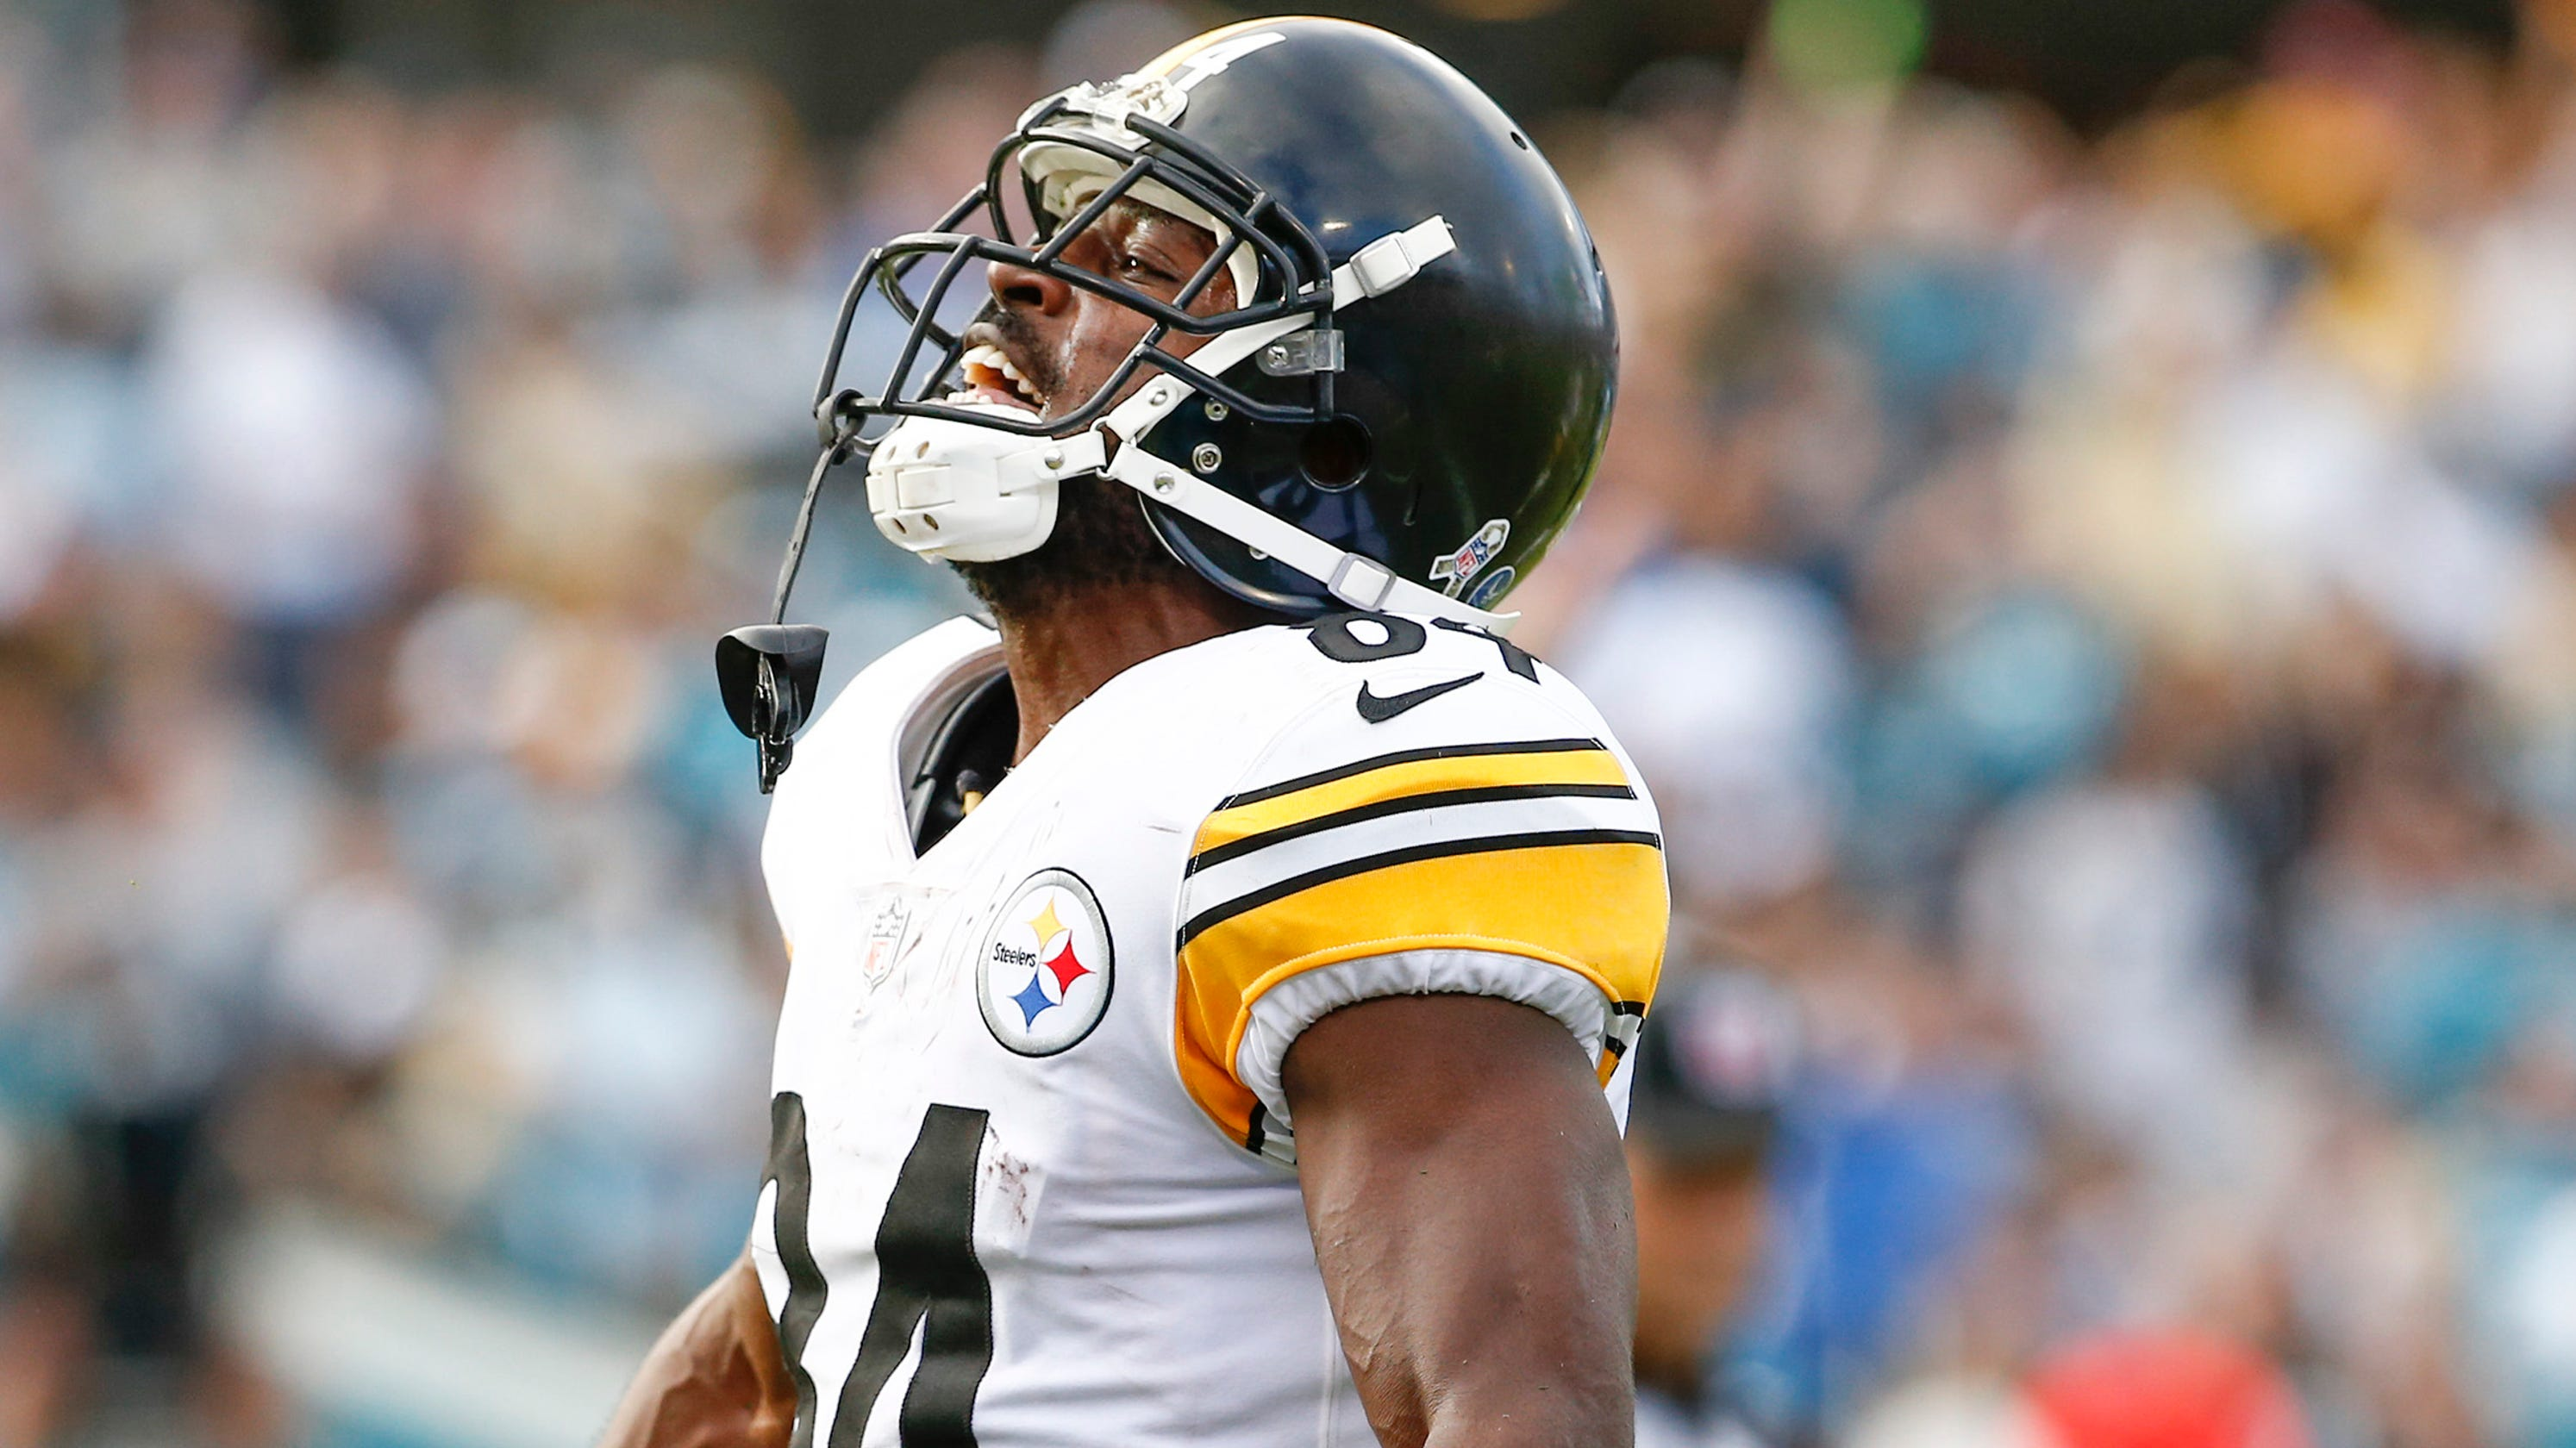 d1866c96 NFL: Steeler's Antonio Brown on roll, Jets Todd Bowles on hot seat